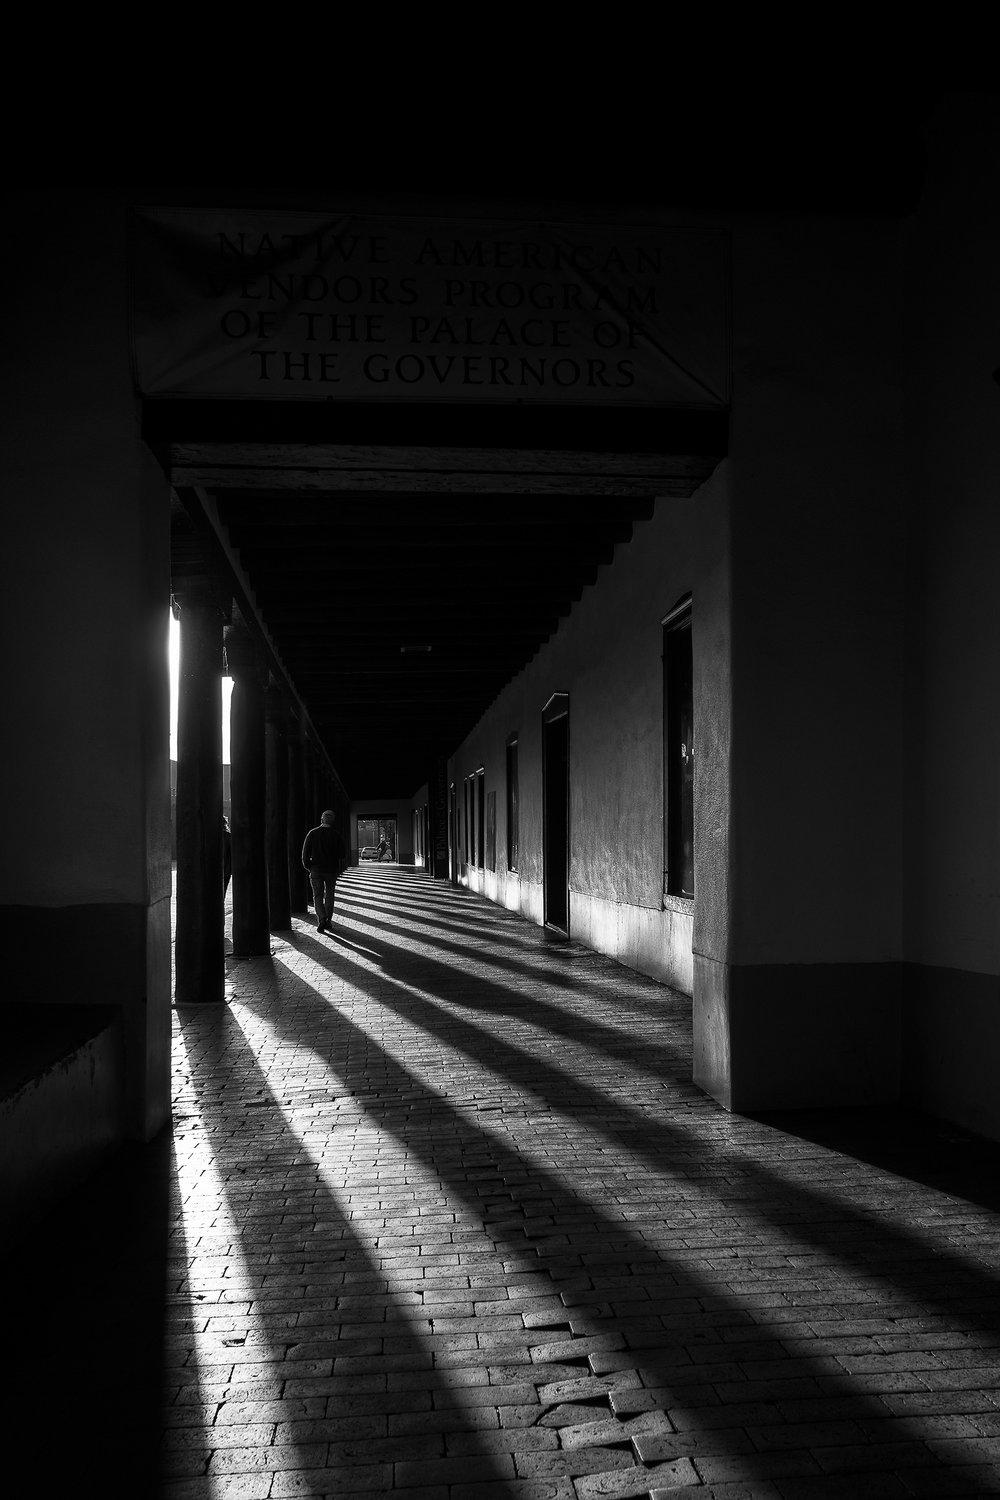 3rd Place Sense of Place, 'When We Stand in the Light', Diego Romero